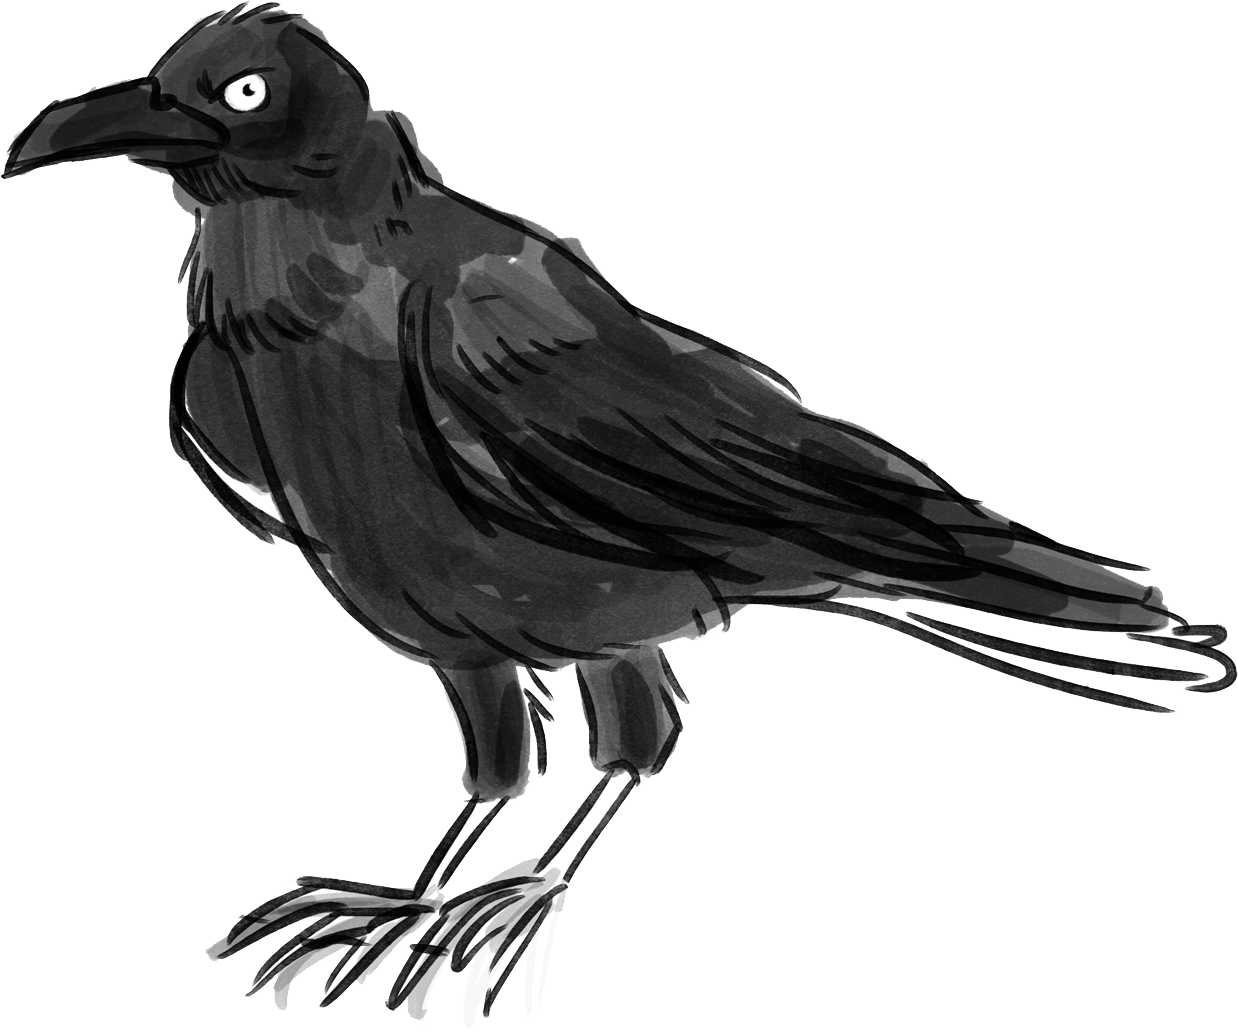 Noppy S Mysterious Crow By Goldietesting